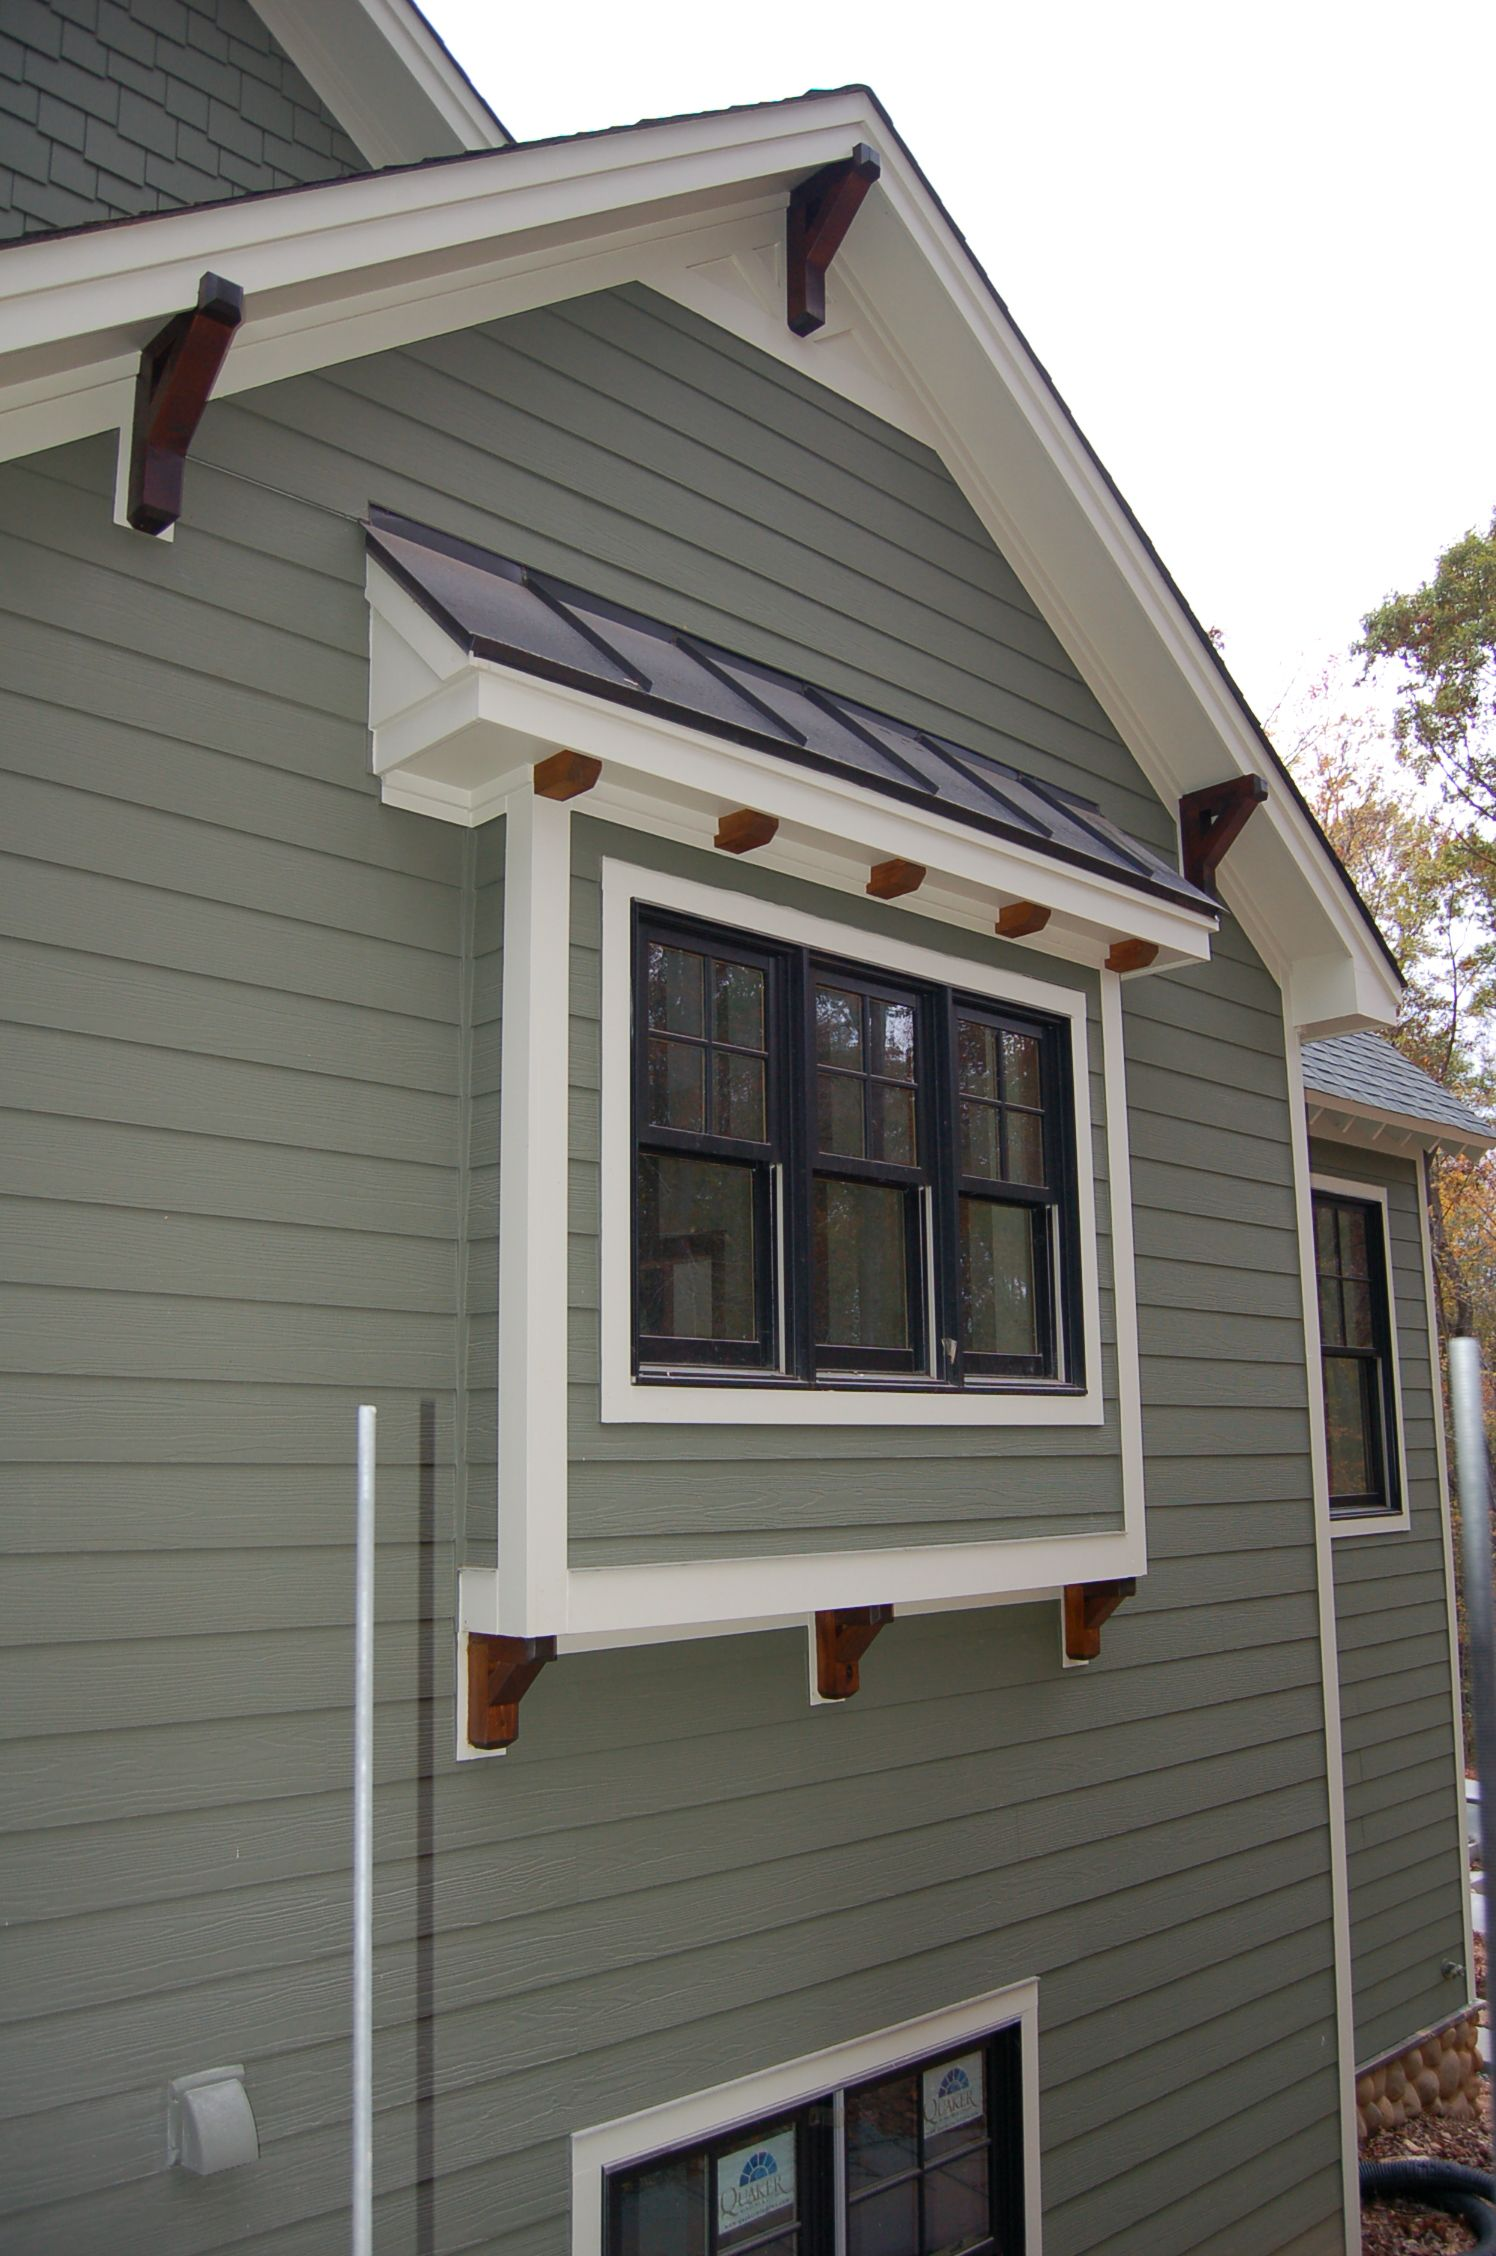 Craftsman Exterior Trim Details Lots Of Exterior Touch